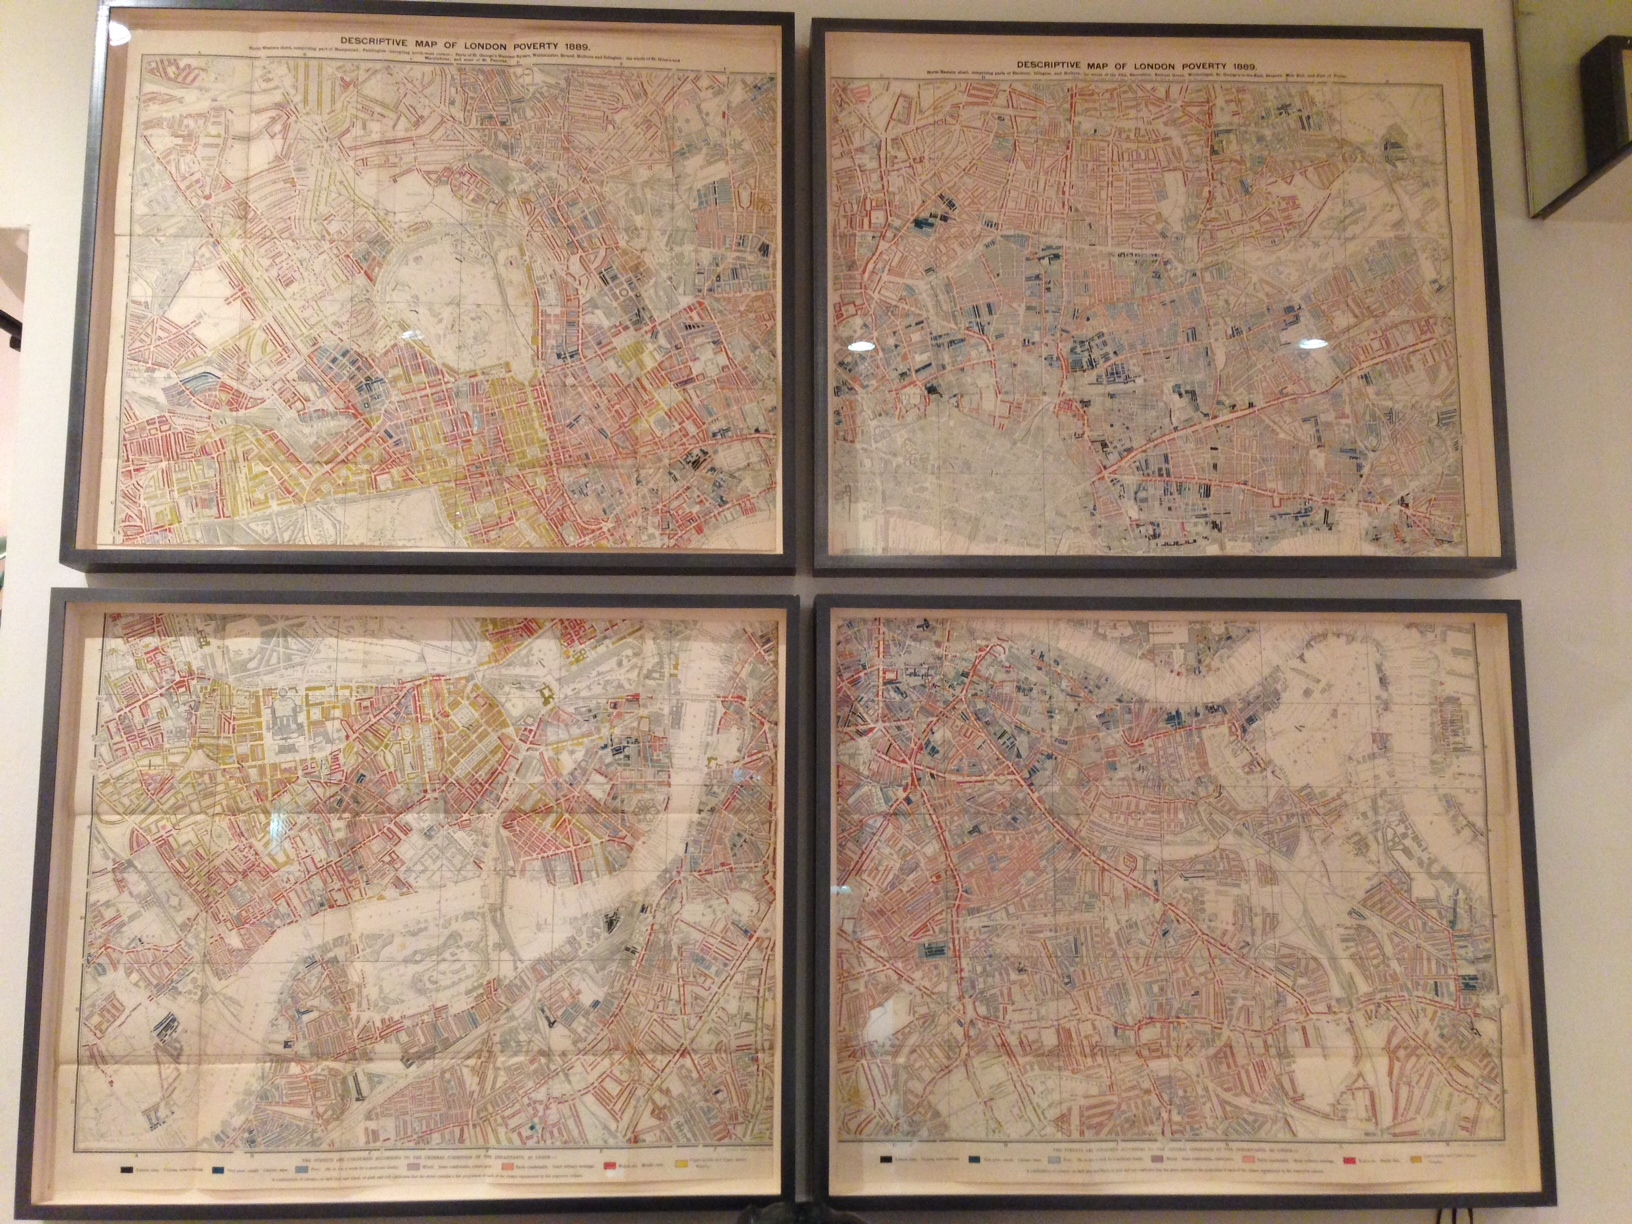 Soane's framed version of Charles Booth's London Poverty Map